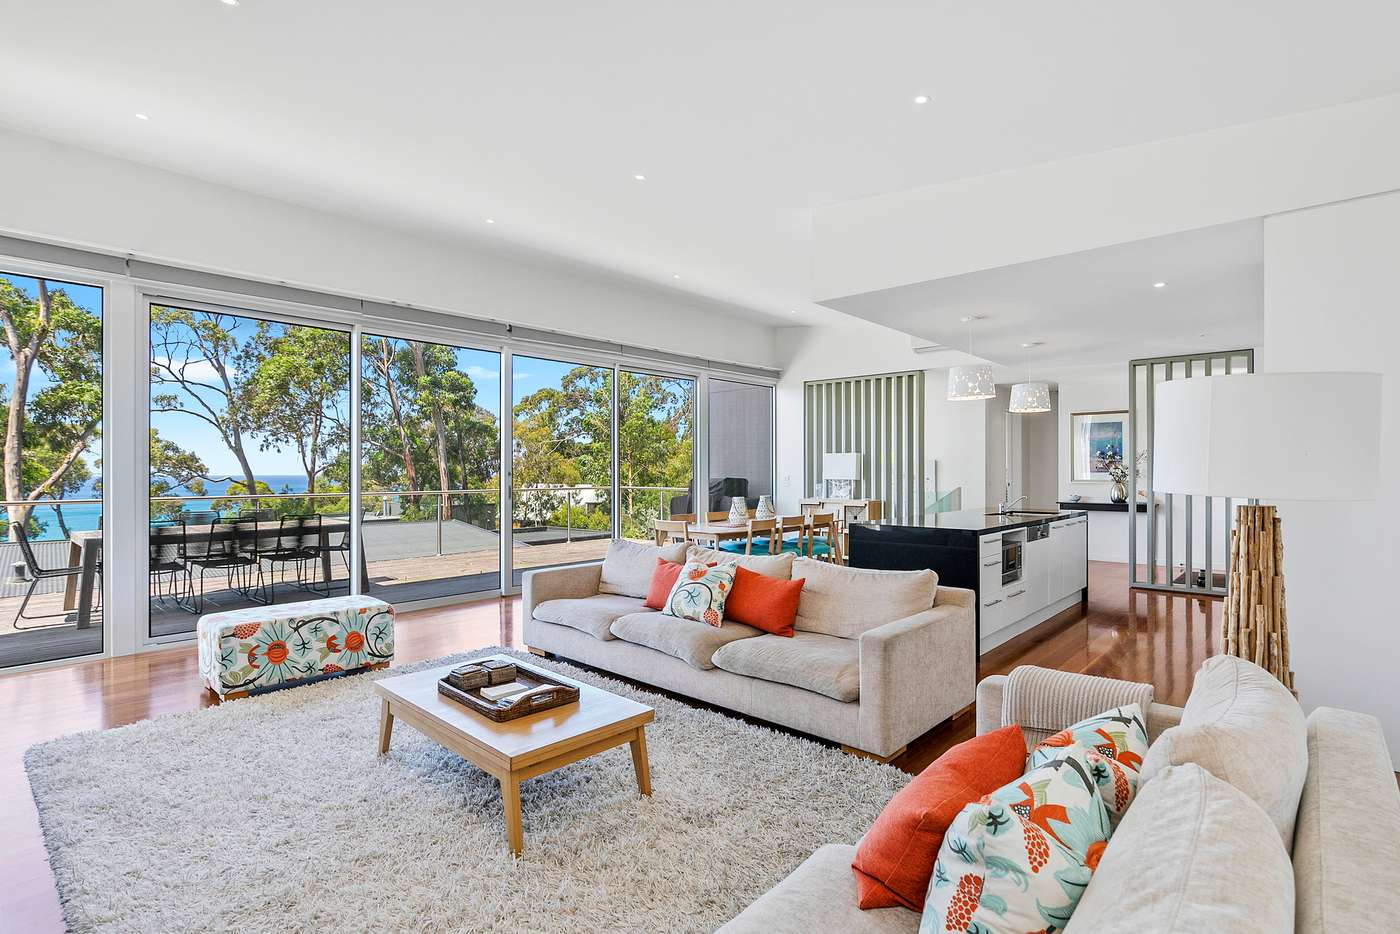 Main view of Homely house listing, 24A Toorak Terrace, Lorne VIC 3232